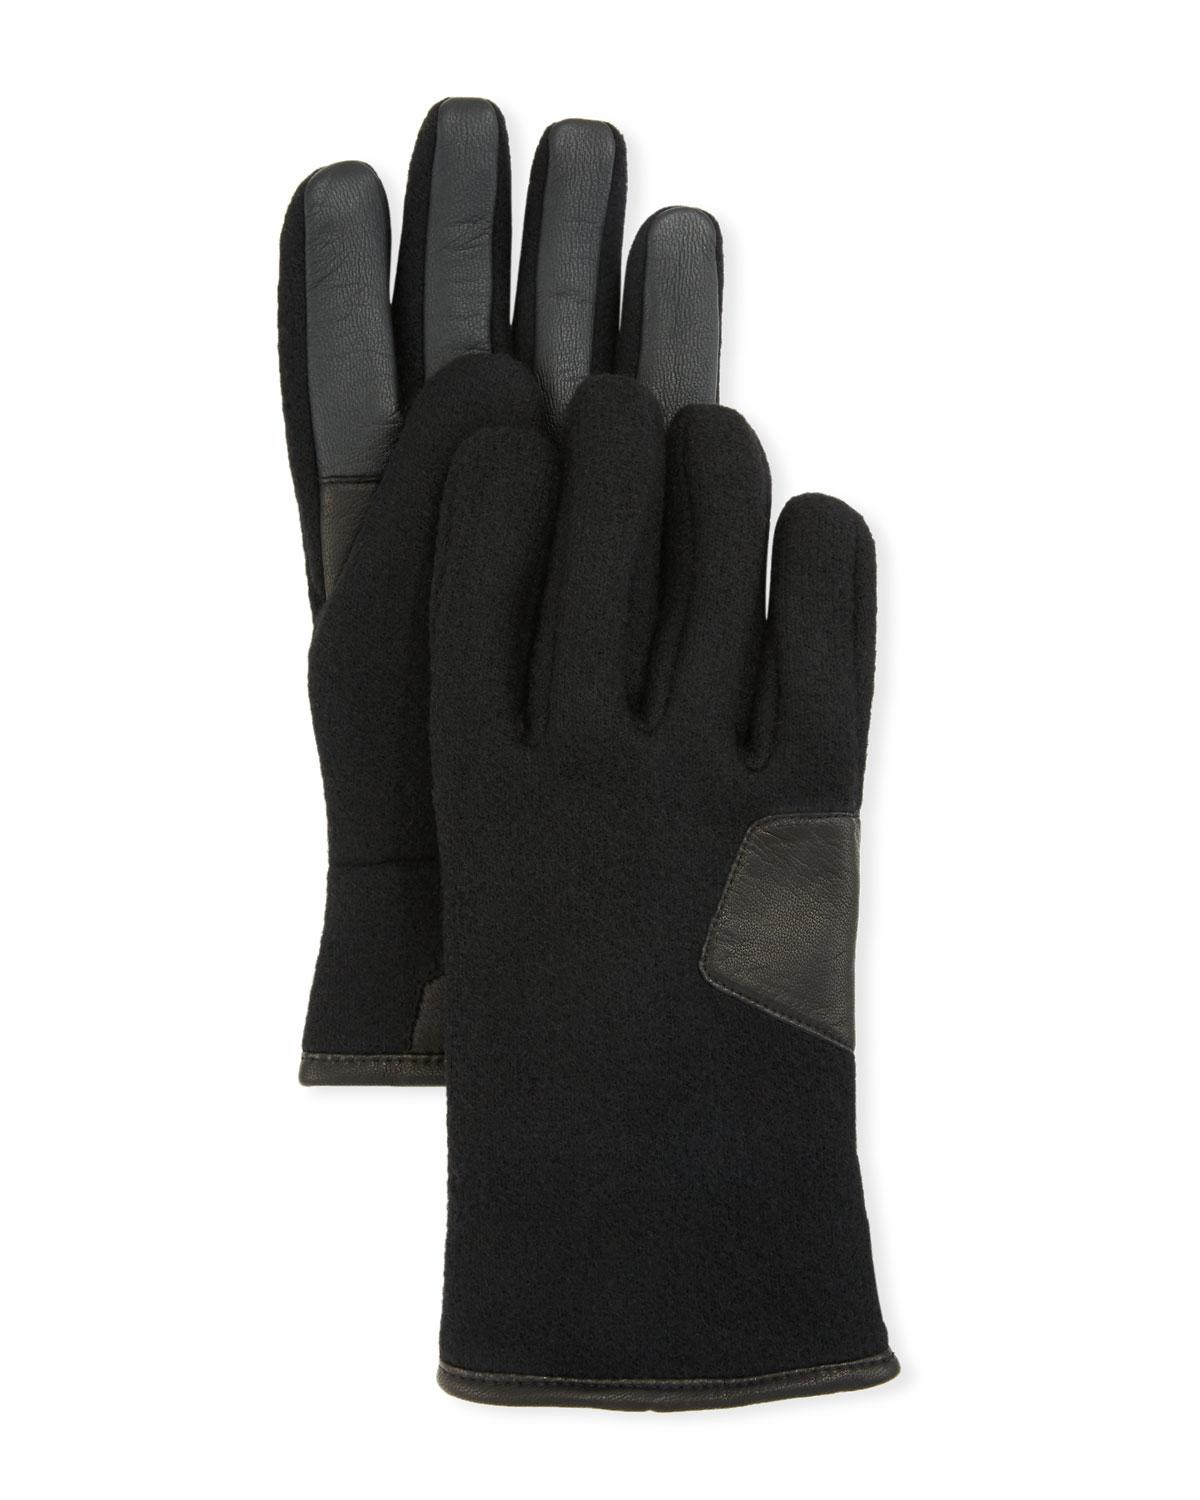 ca2901c62f958 Lyst - UGG Men's Fabric & Leather Touchscreen Gloves in Black for Men